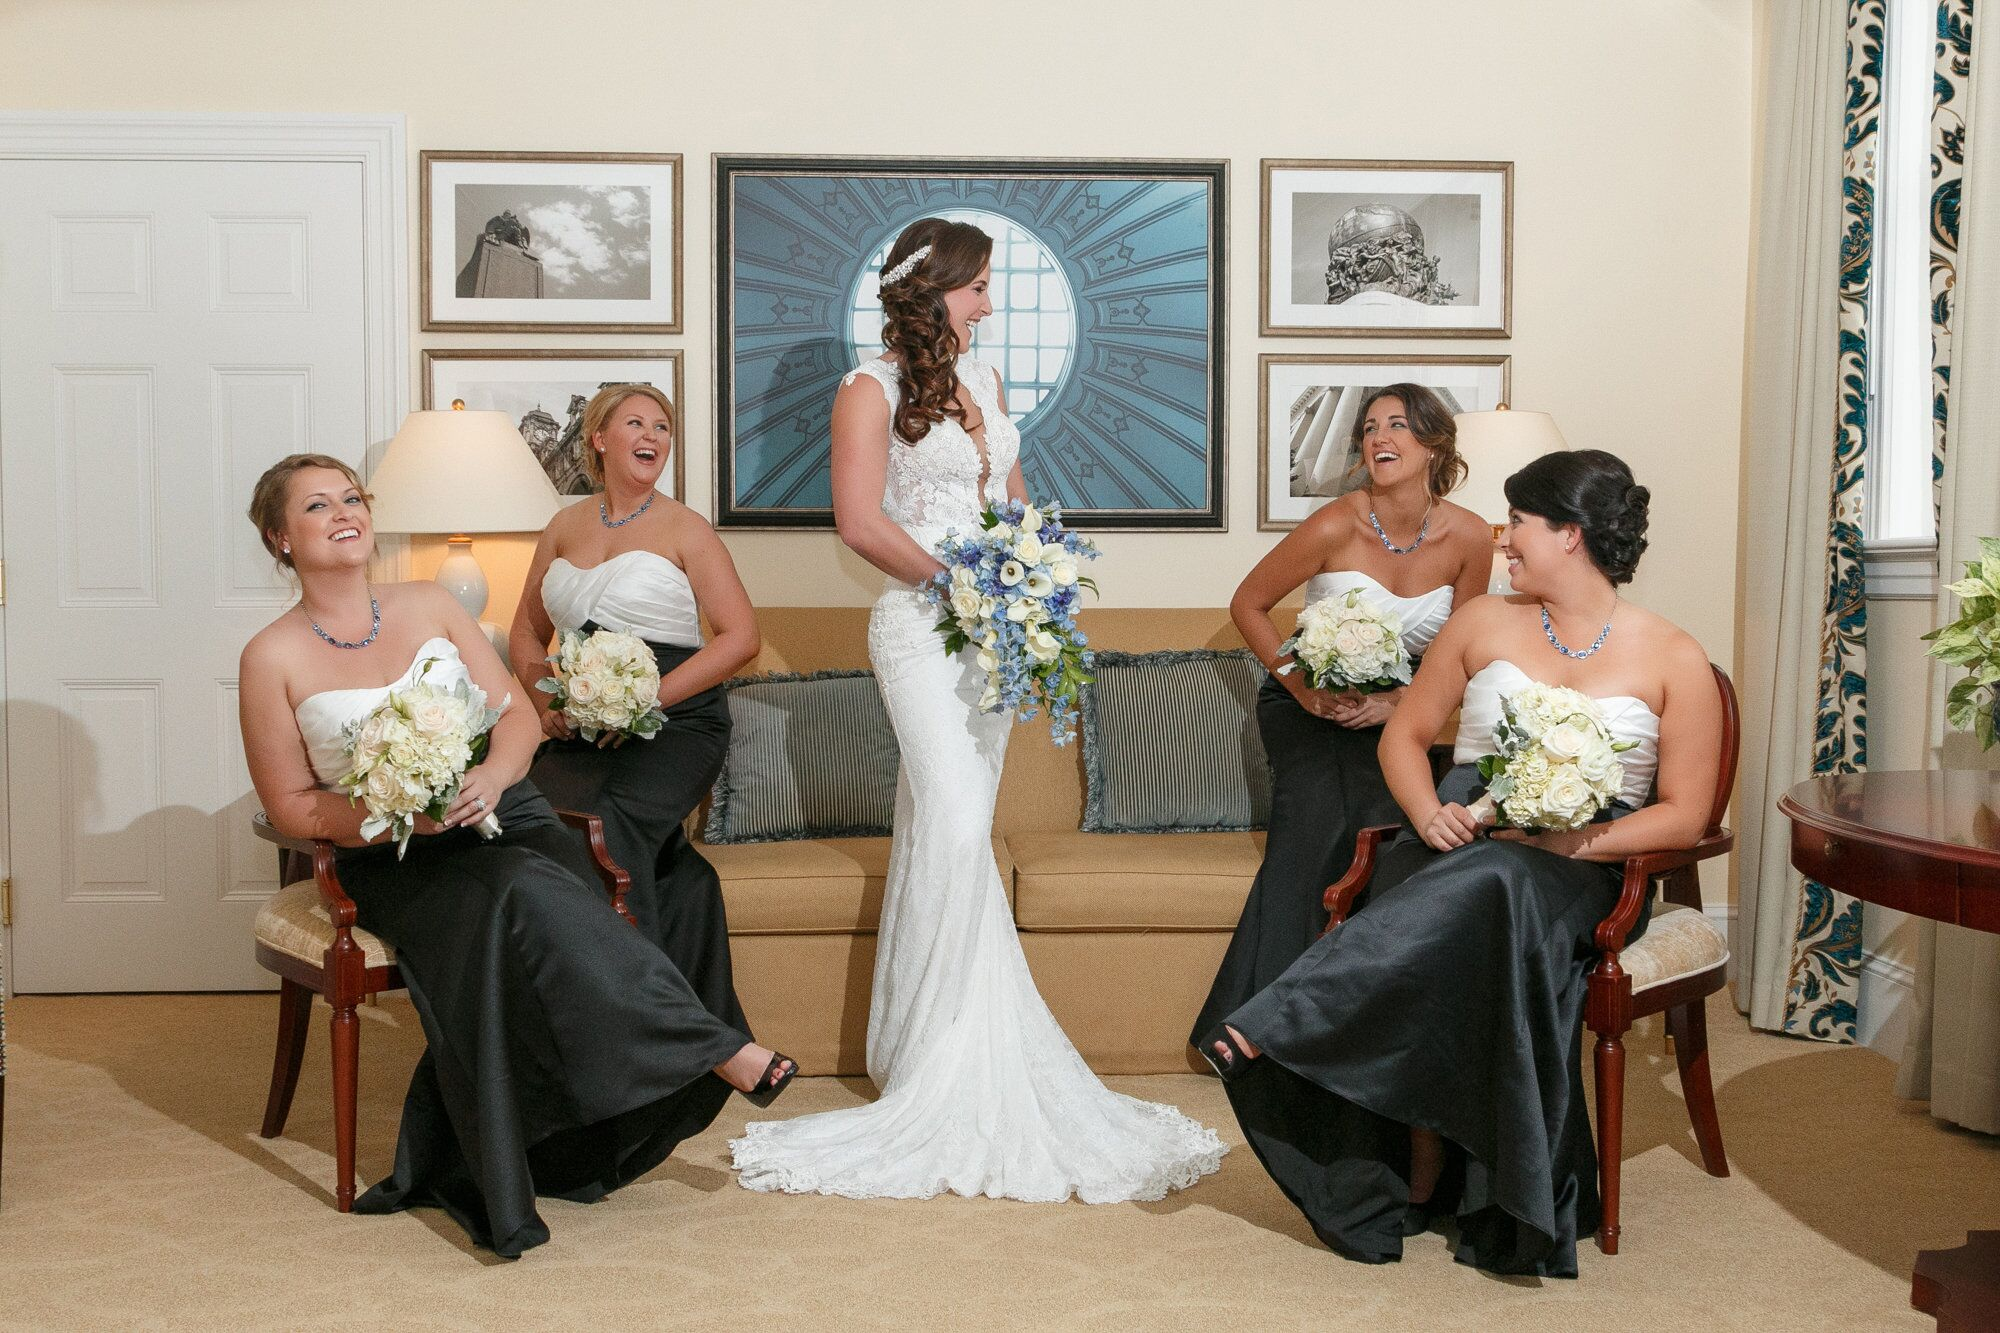 amanda laughing with her bridesmaids